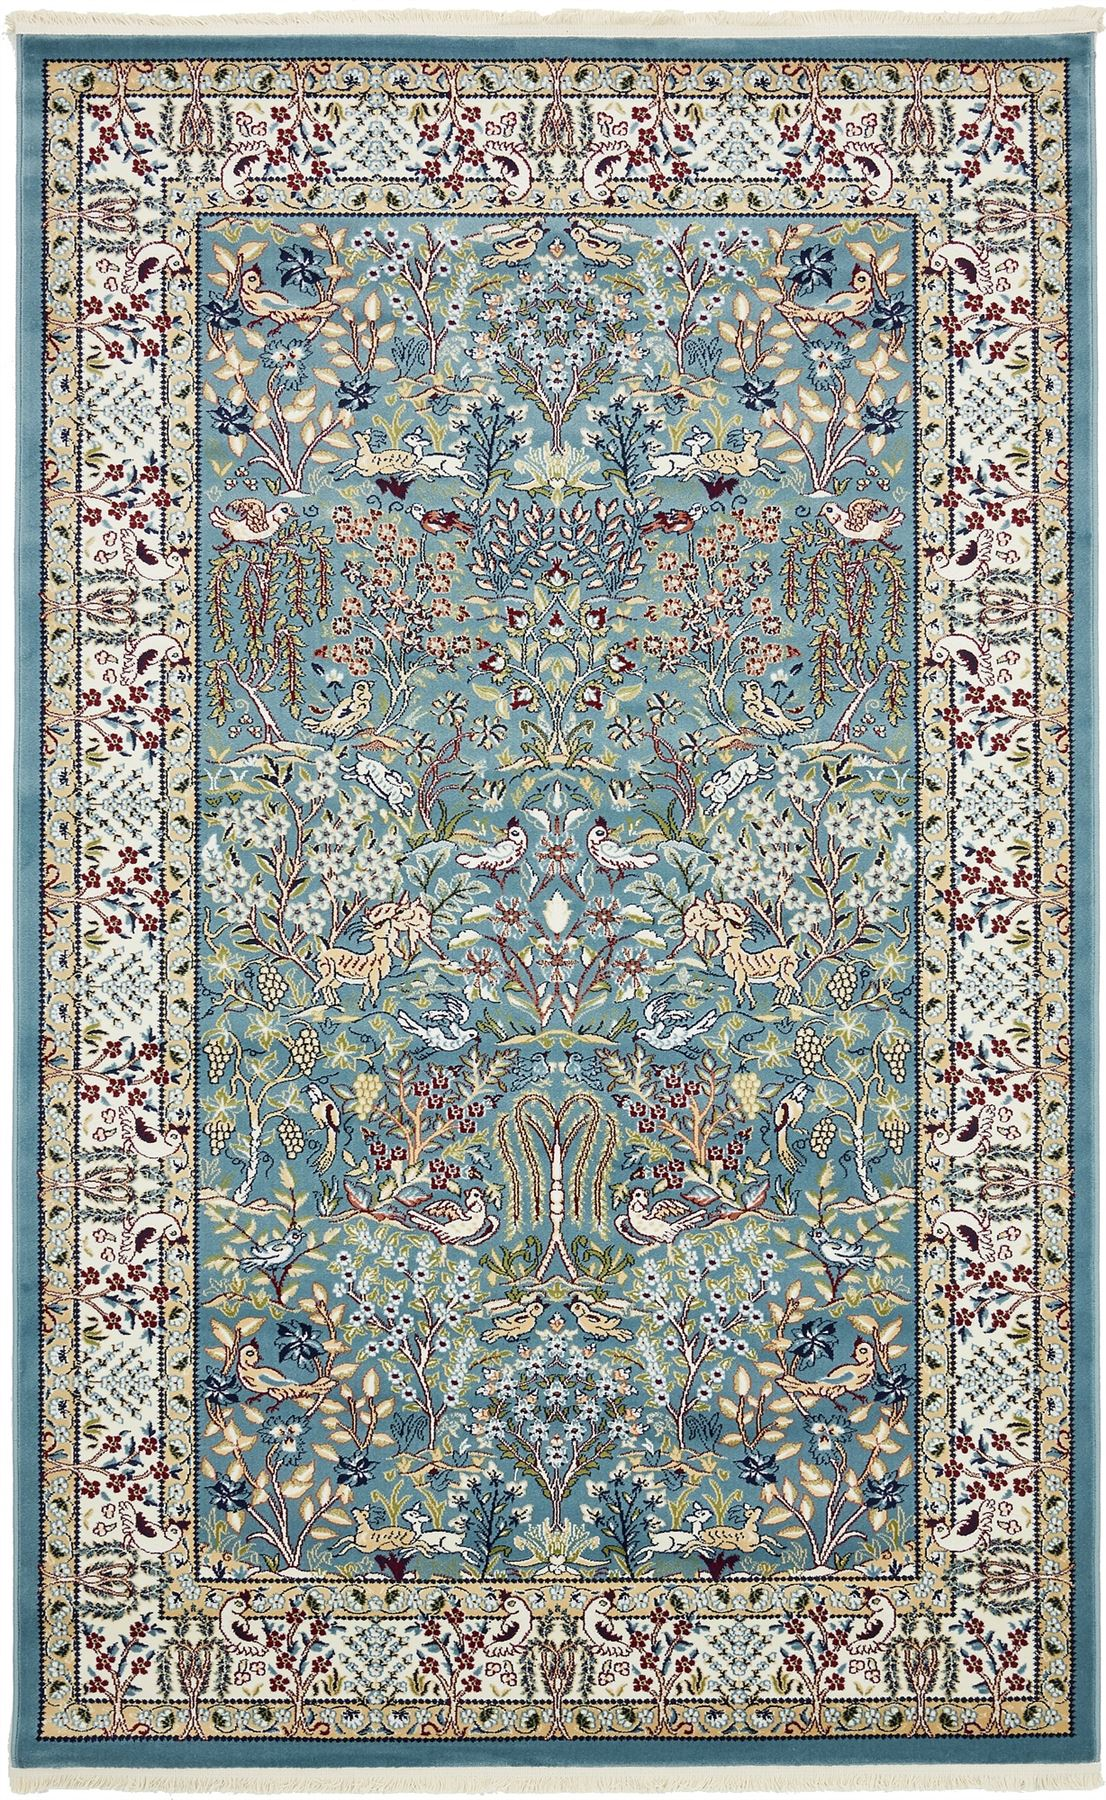 Country floor carpet traditional area rug floral carpets for Area rugs and carpets